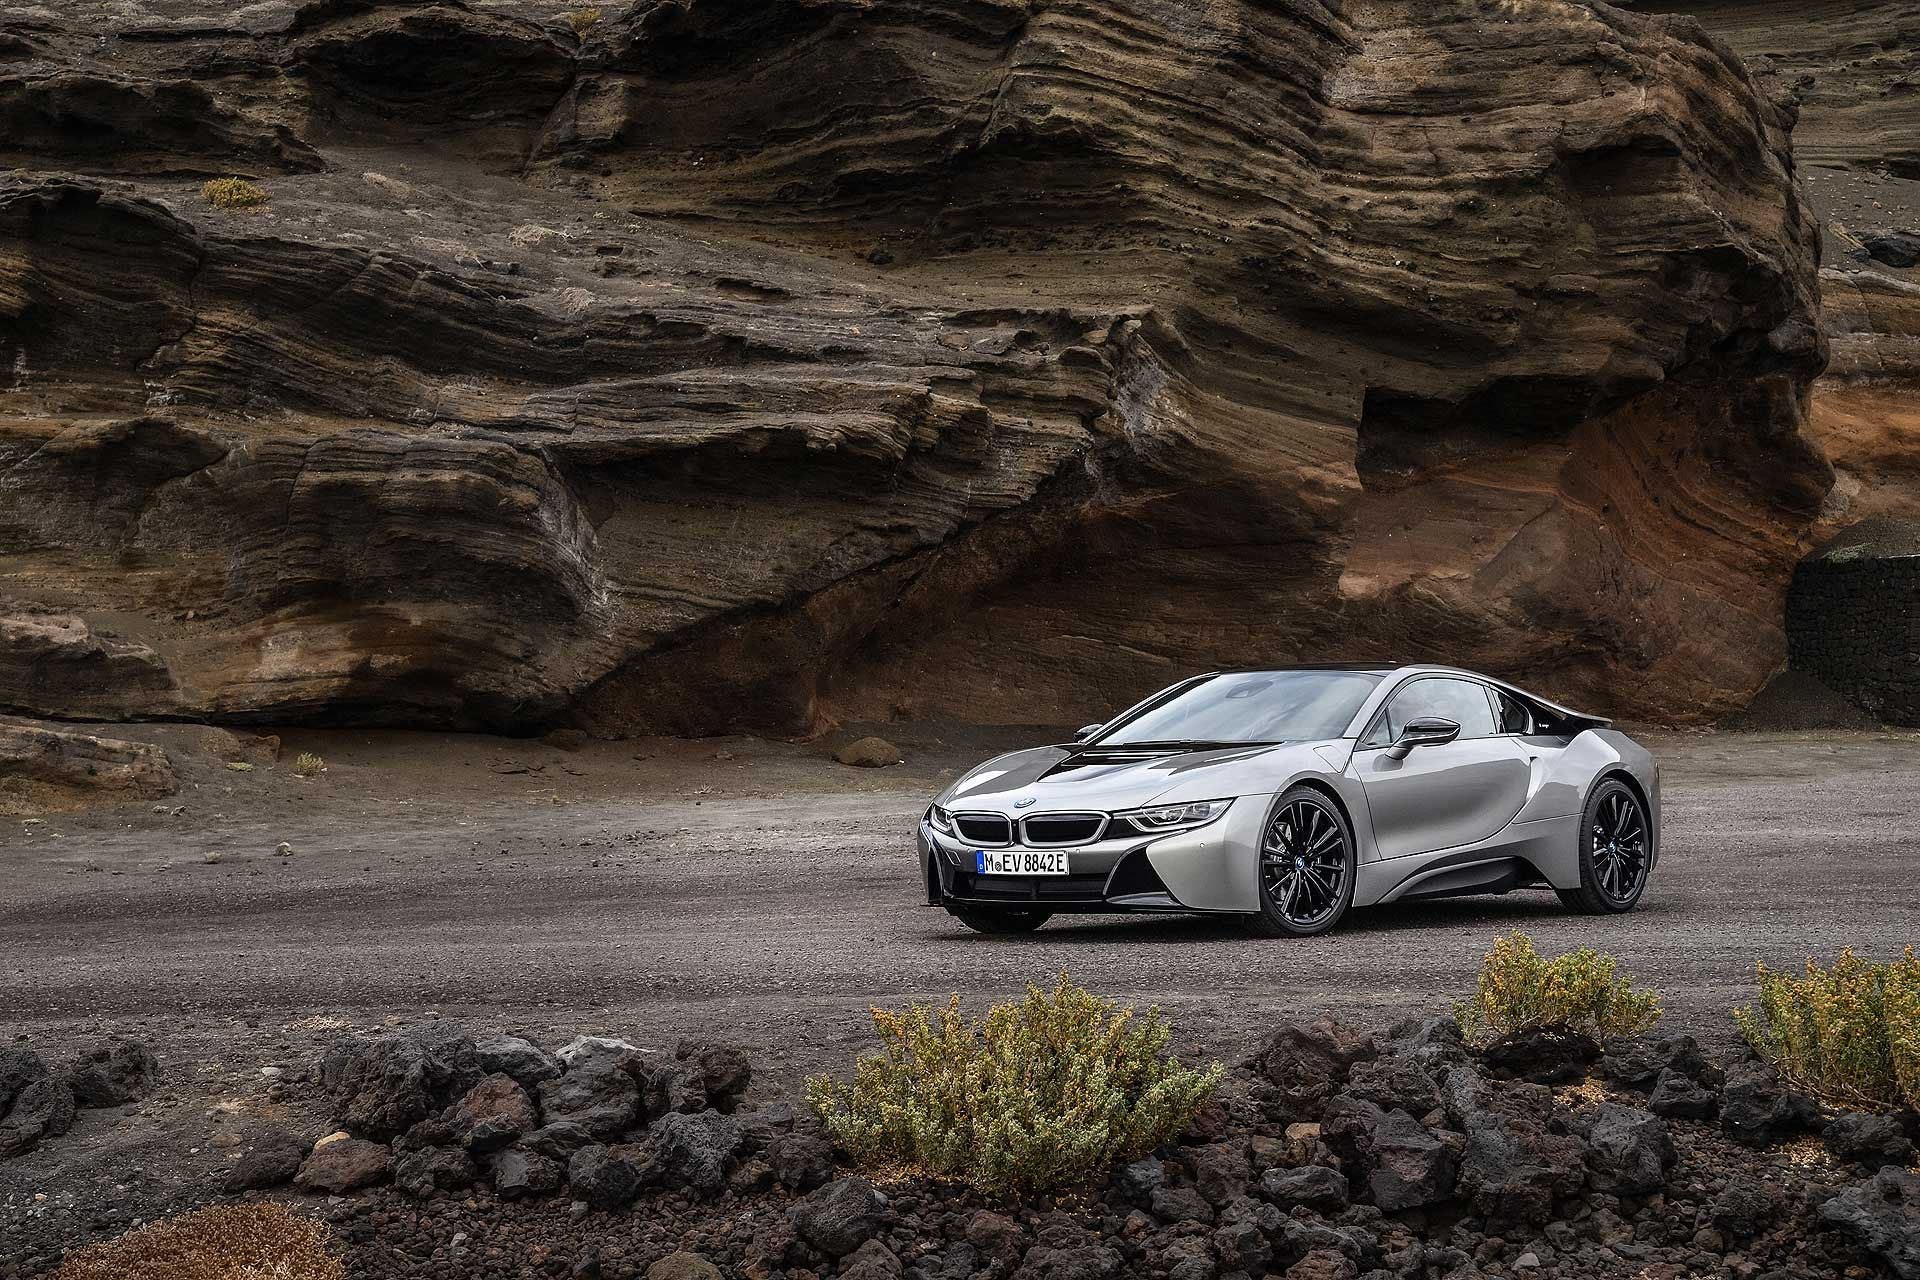 Bmw Updates Its Sports Car Of The Future With The New I8 Coupe